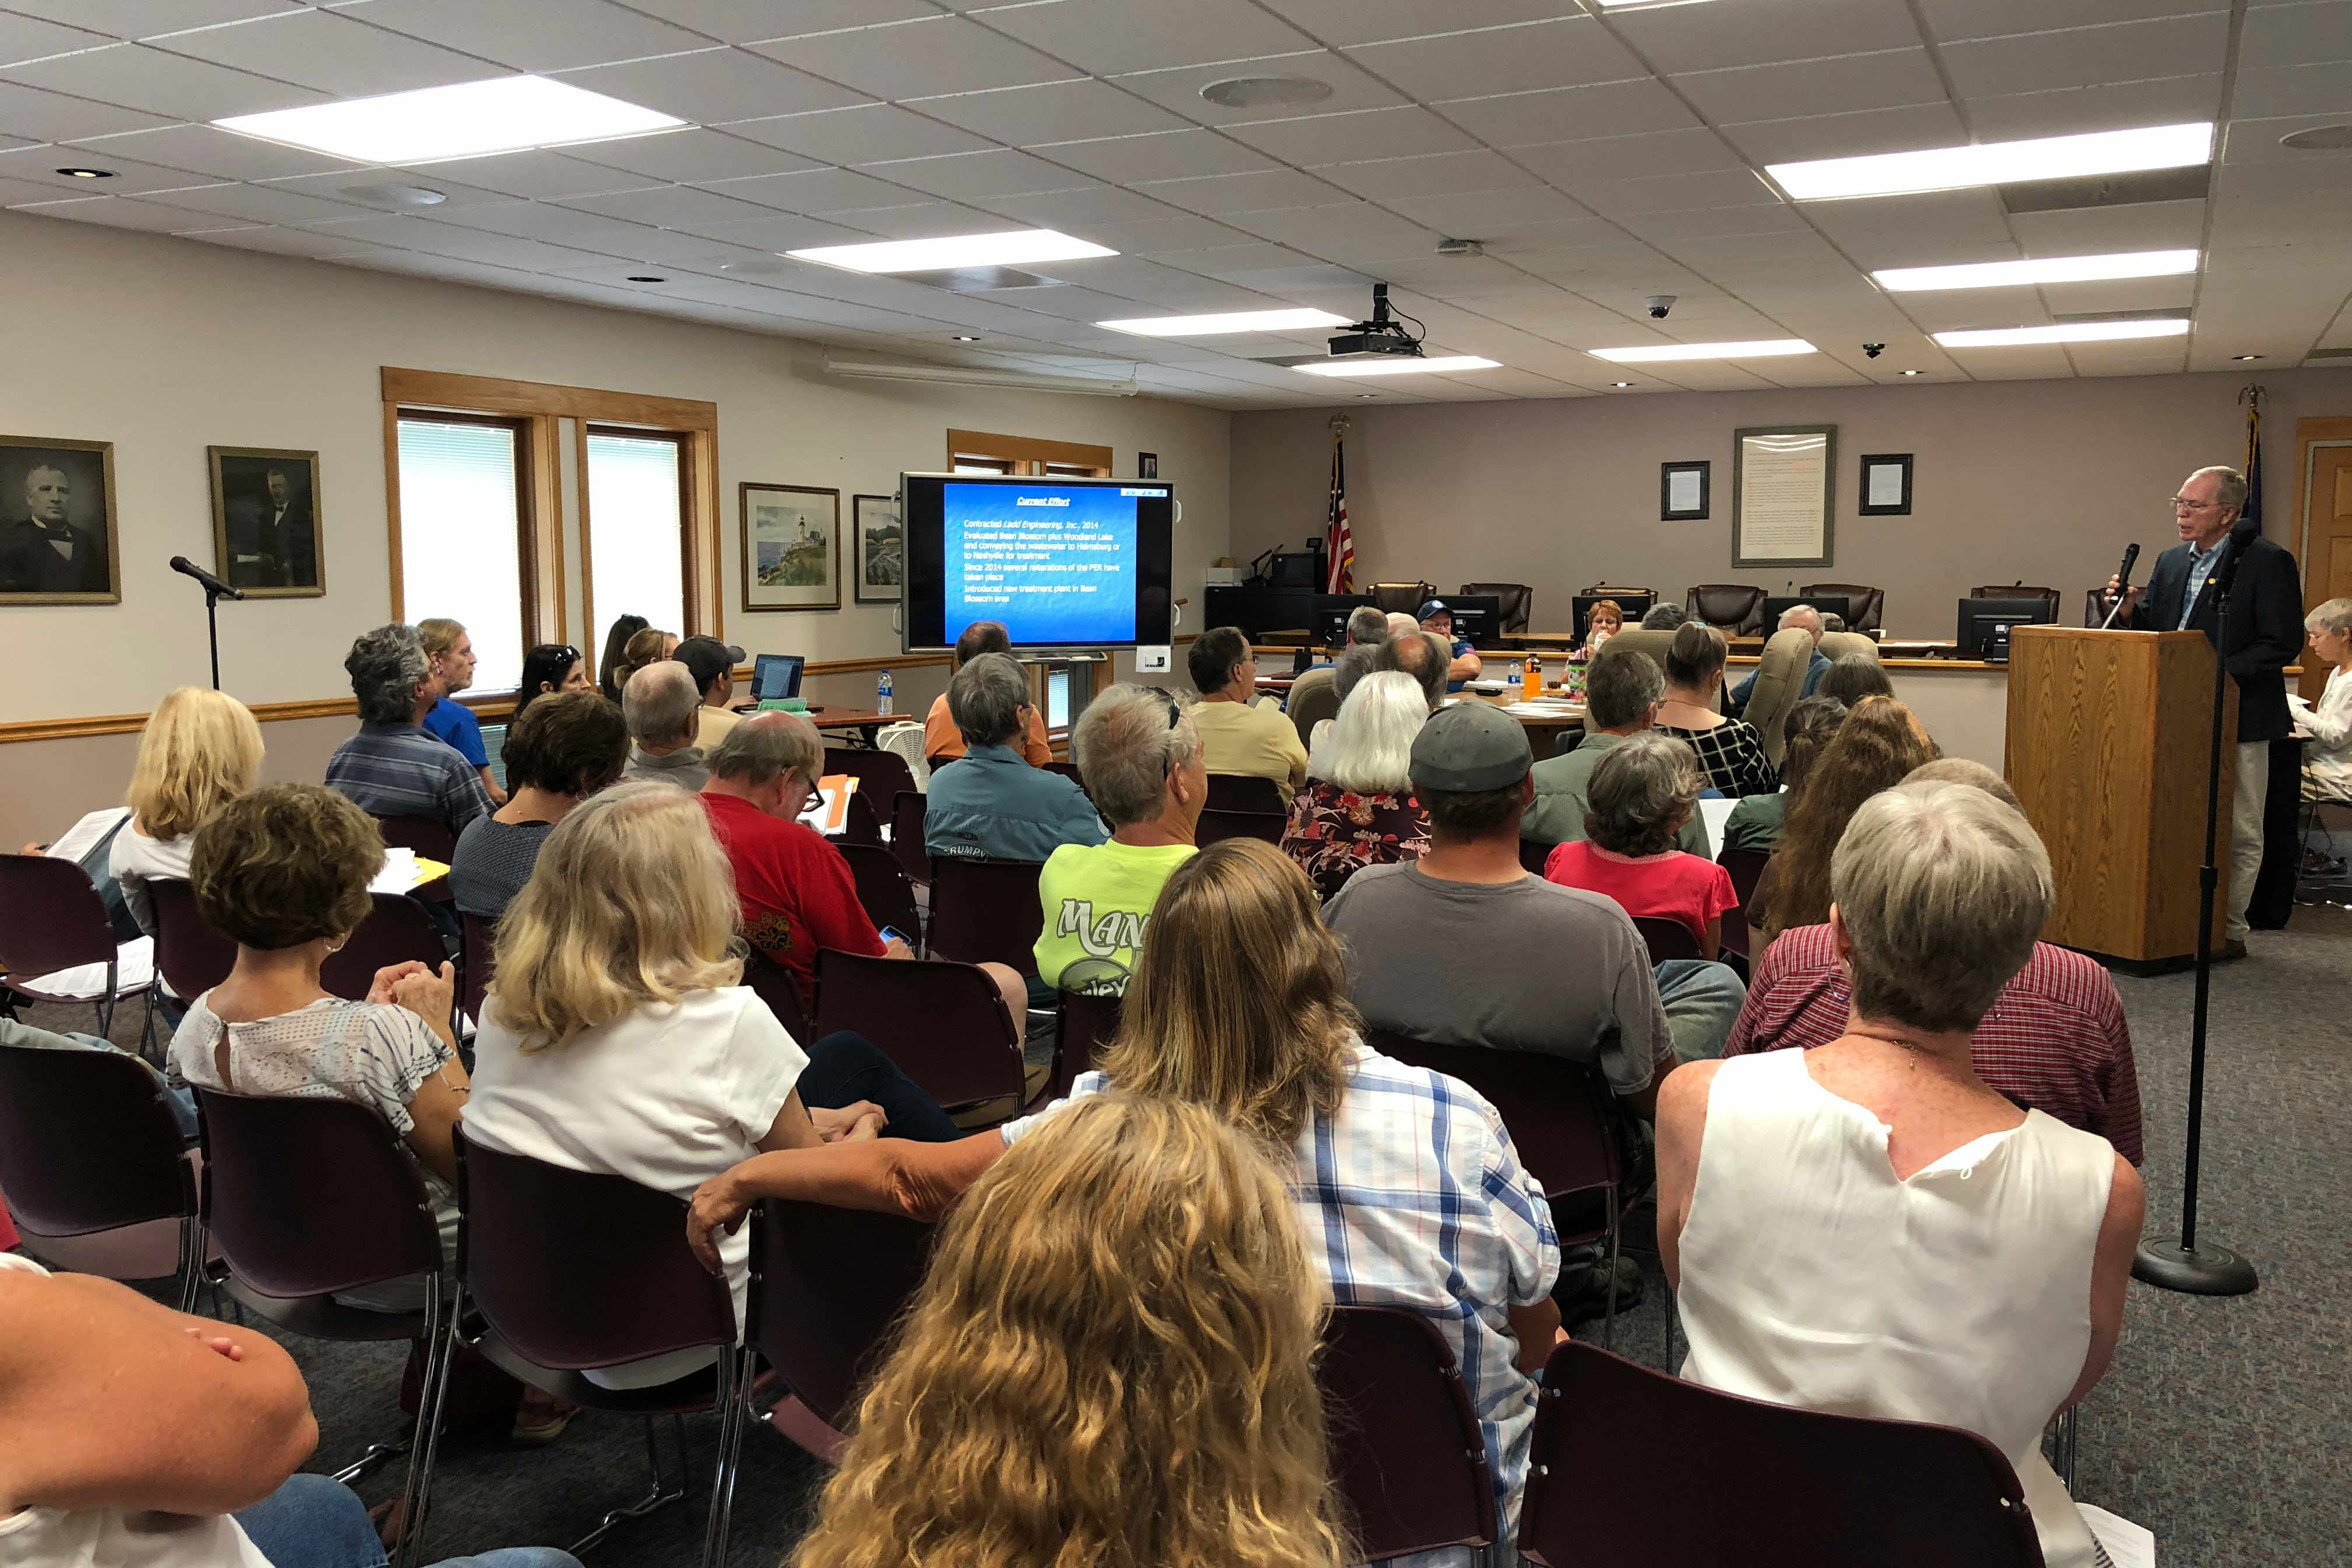 Nearly 40 residents attended a Brown County Regional Sewer District Board meeting.  The is green lighting a pricey environmental study that could pave the way for future sewer service to 275 homes.(Brock Turner, WFIU/WTIU News)